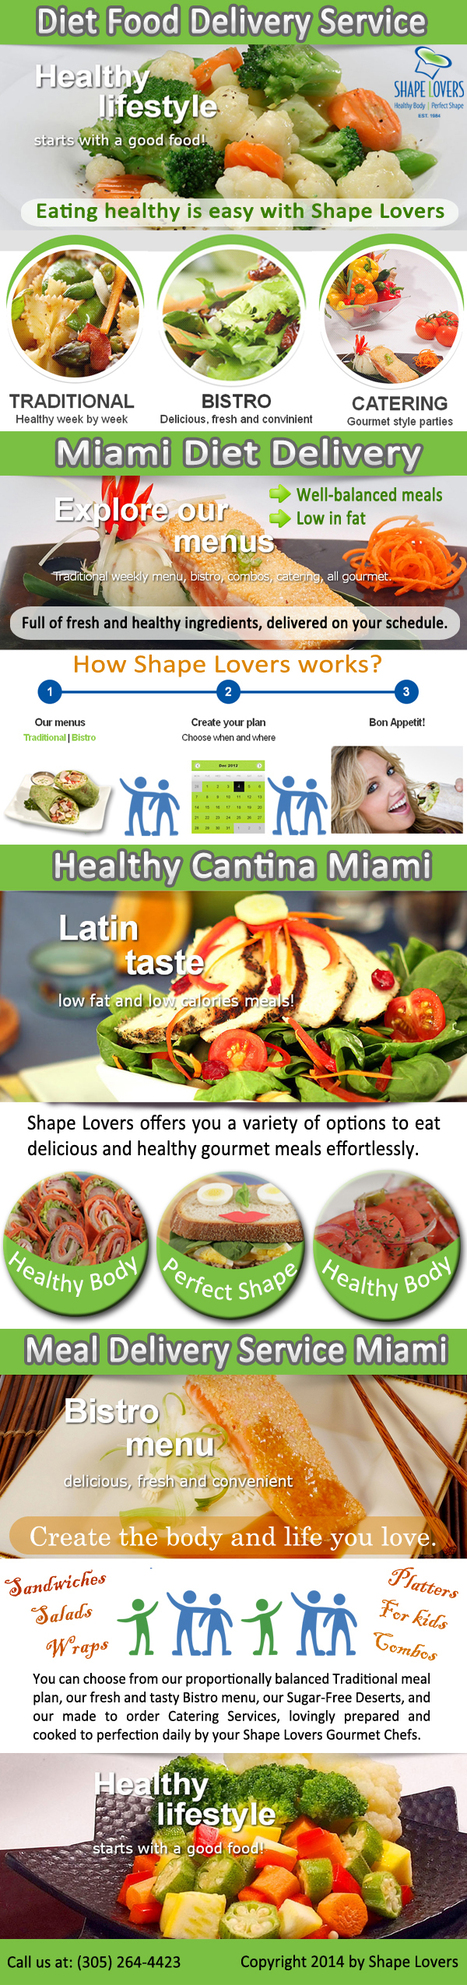 Diet Food Delivery Service   Diet Food Delivery Service   Scoop.it